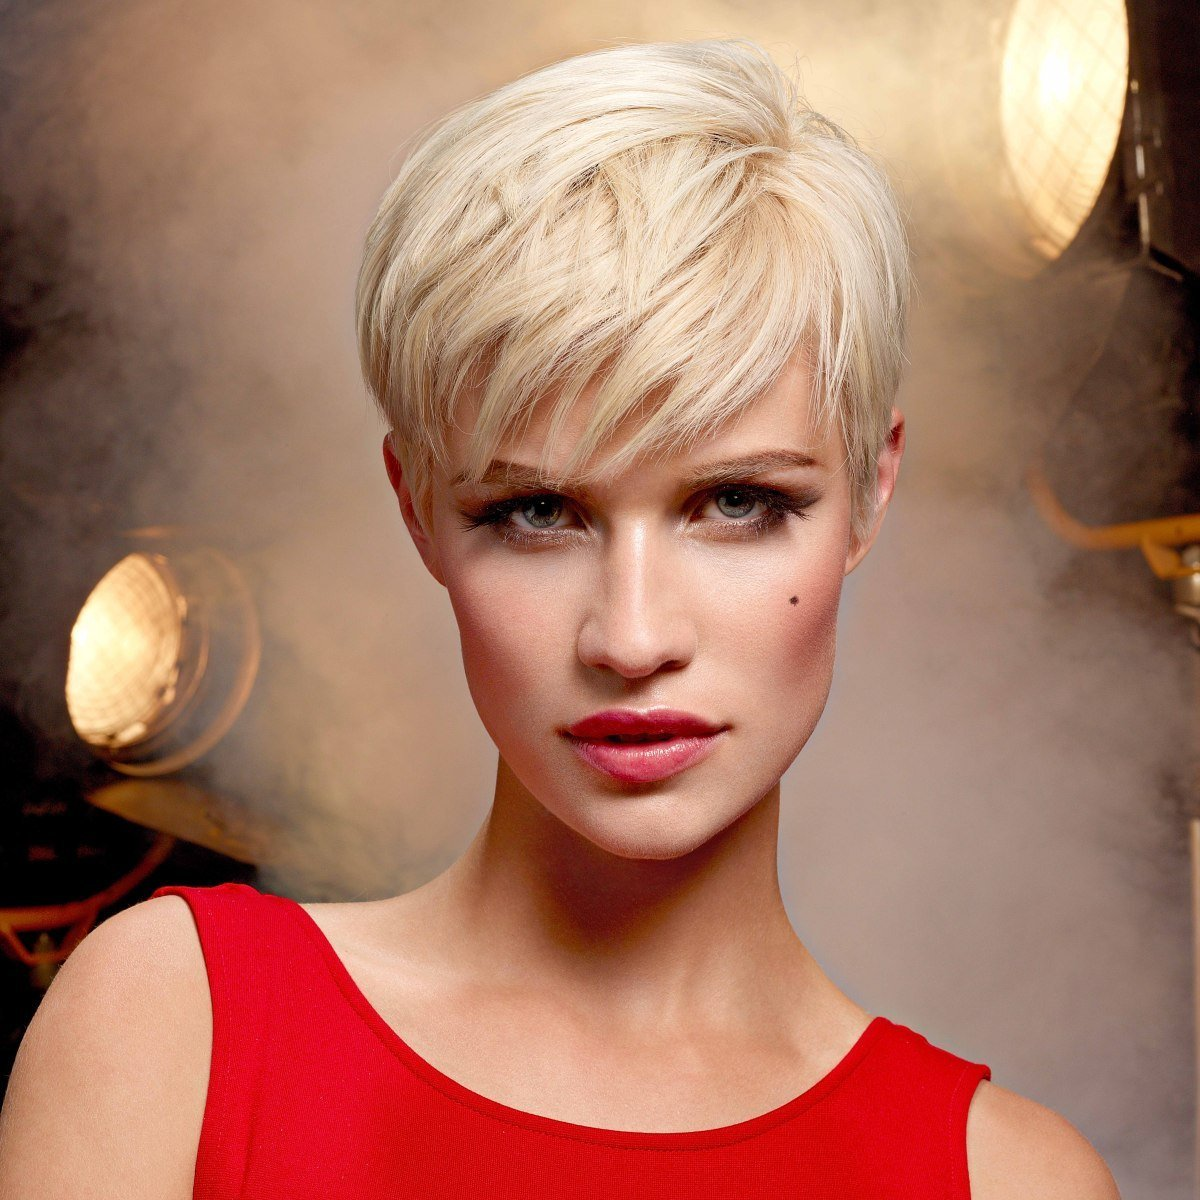 The Best Gender Neutral Hairstyles Advice Pictures